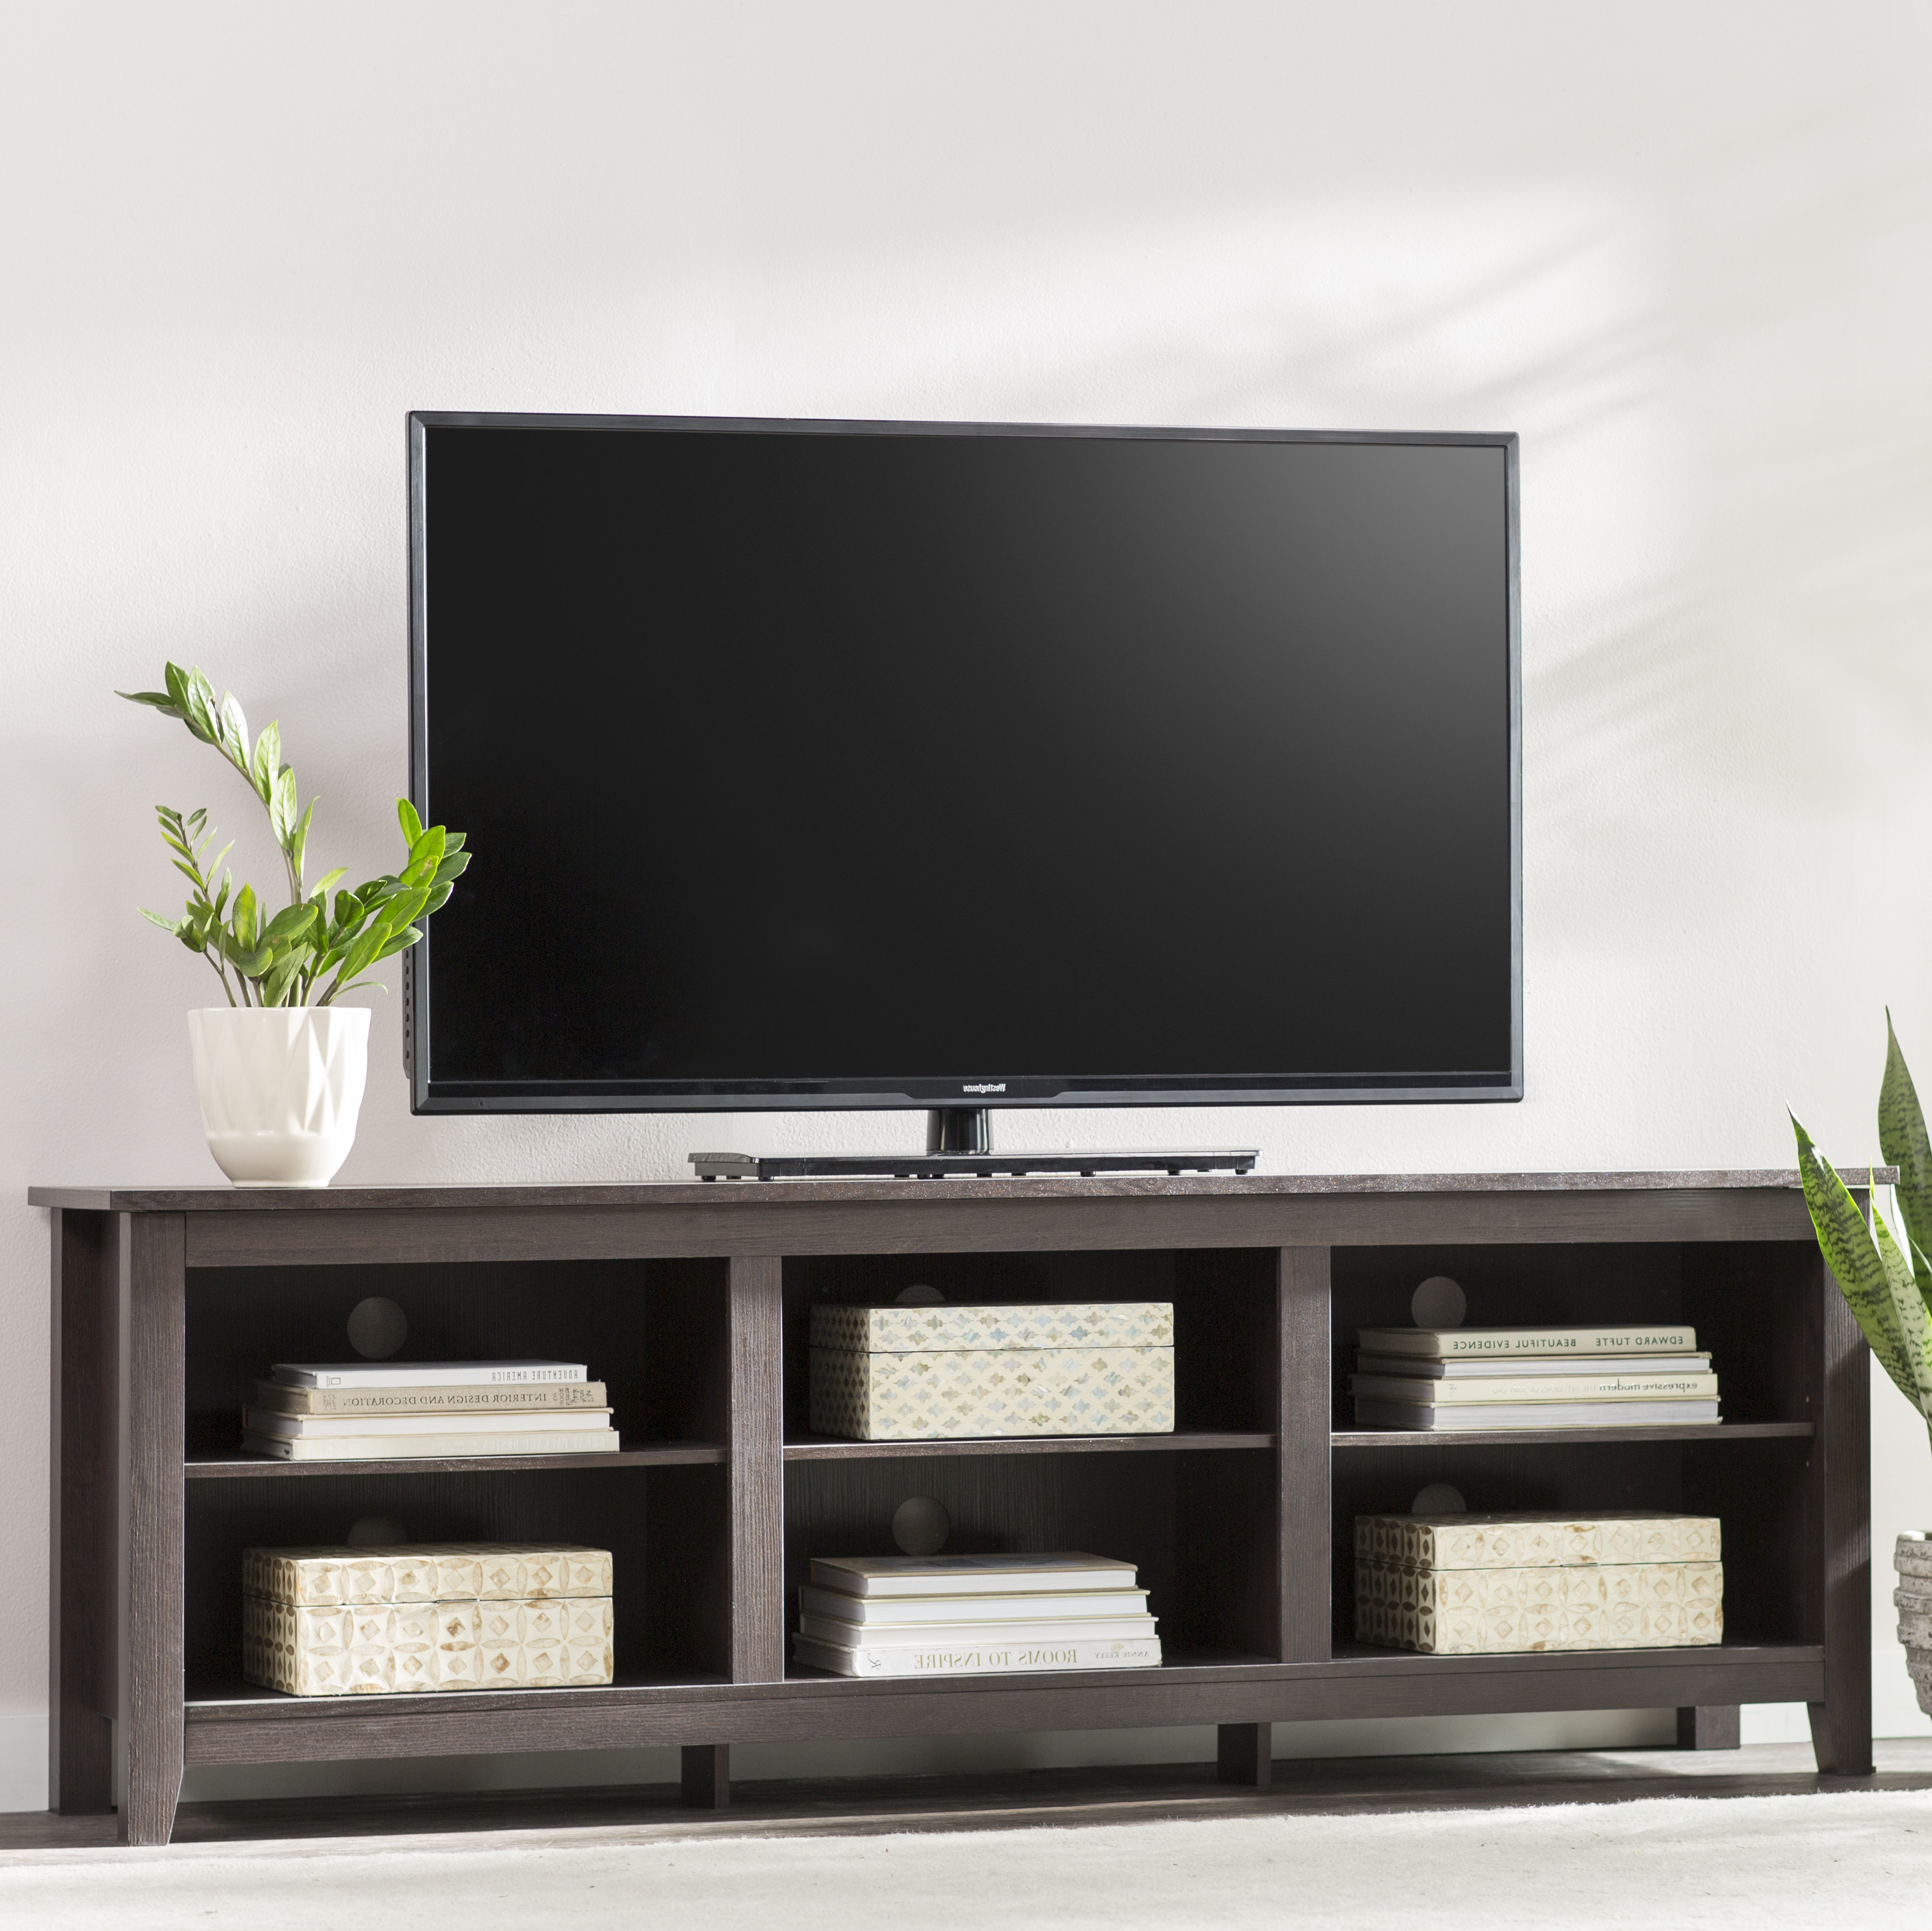 Tv Stands & Entertainment Centers You'll Love Pertaining To Widely Used Cabinet Tv Stands (View 3 of 20)